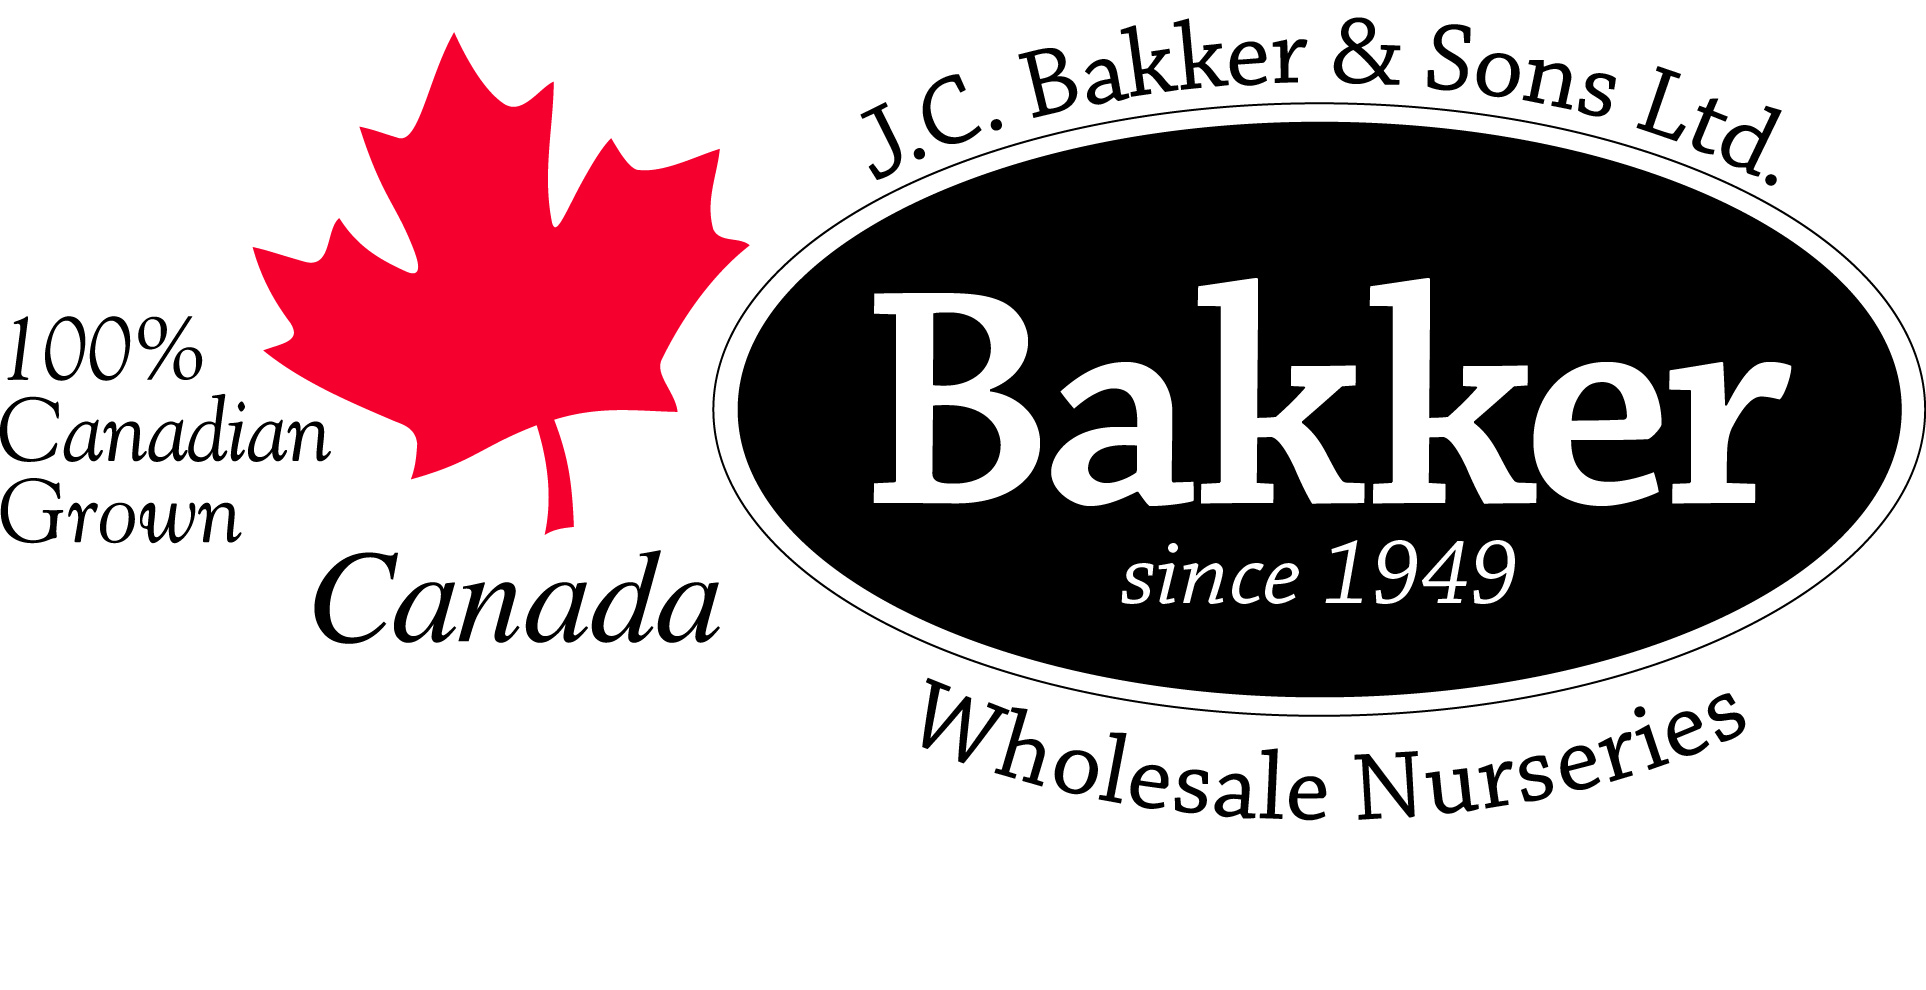 J.C. Bakker & Sons Ltd.